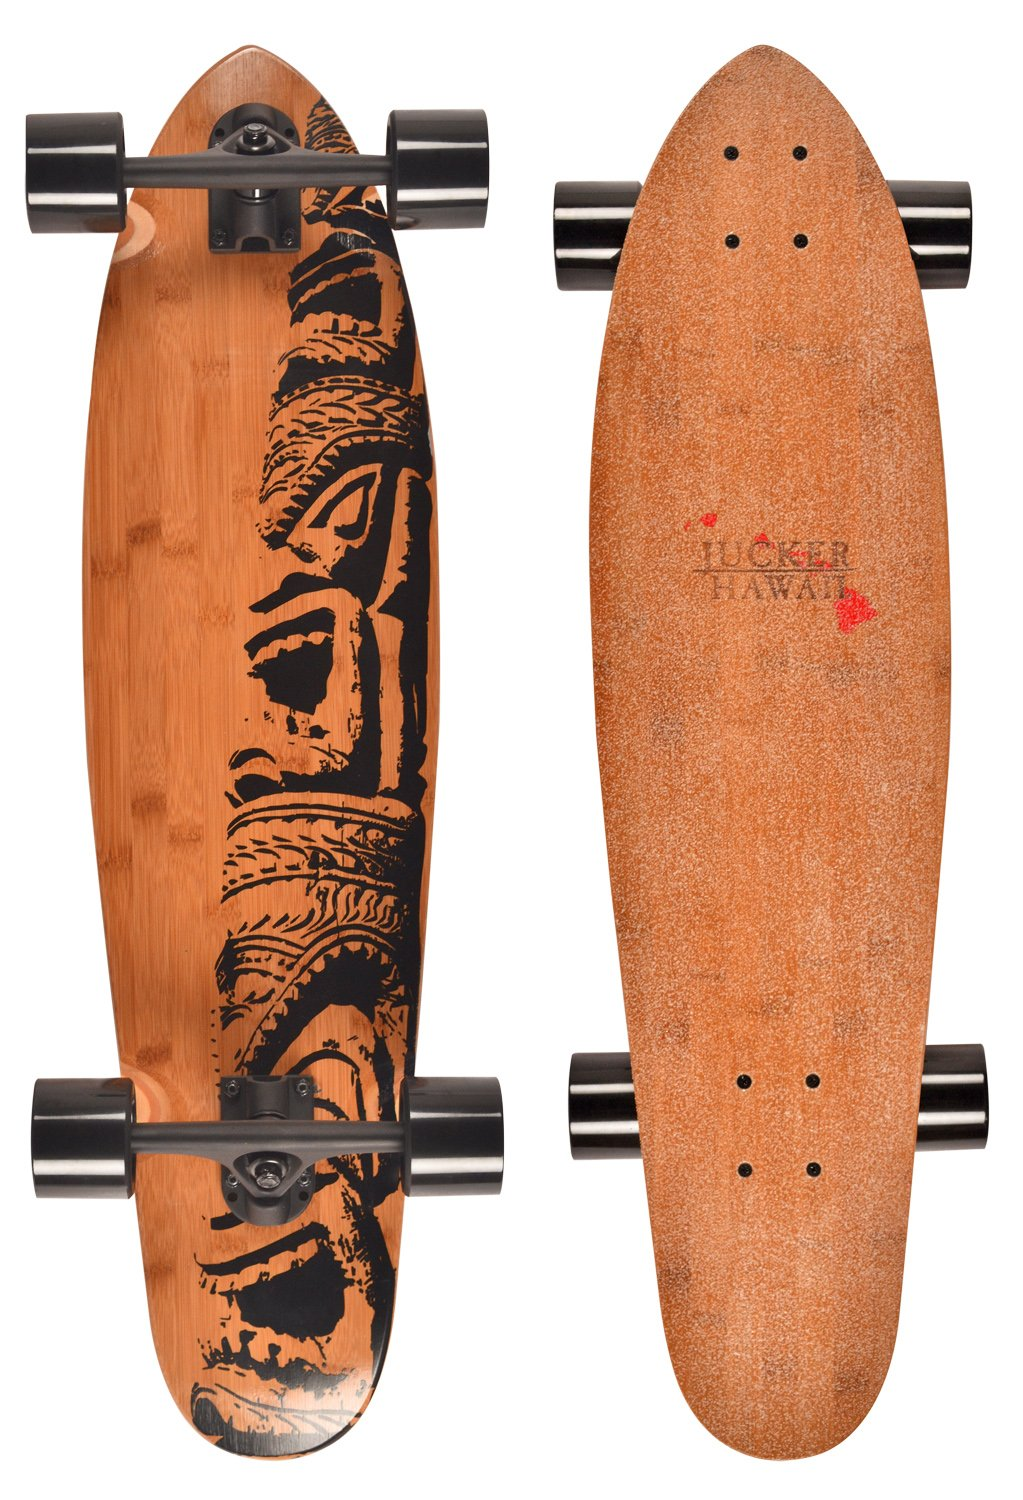 JUCKER HAWAII Longboards Mini Cruiser Alle Makaha in verschiedenen Varianten